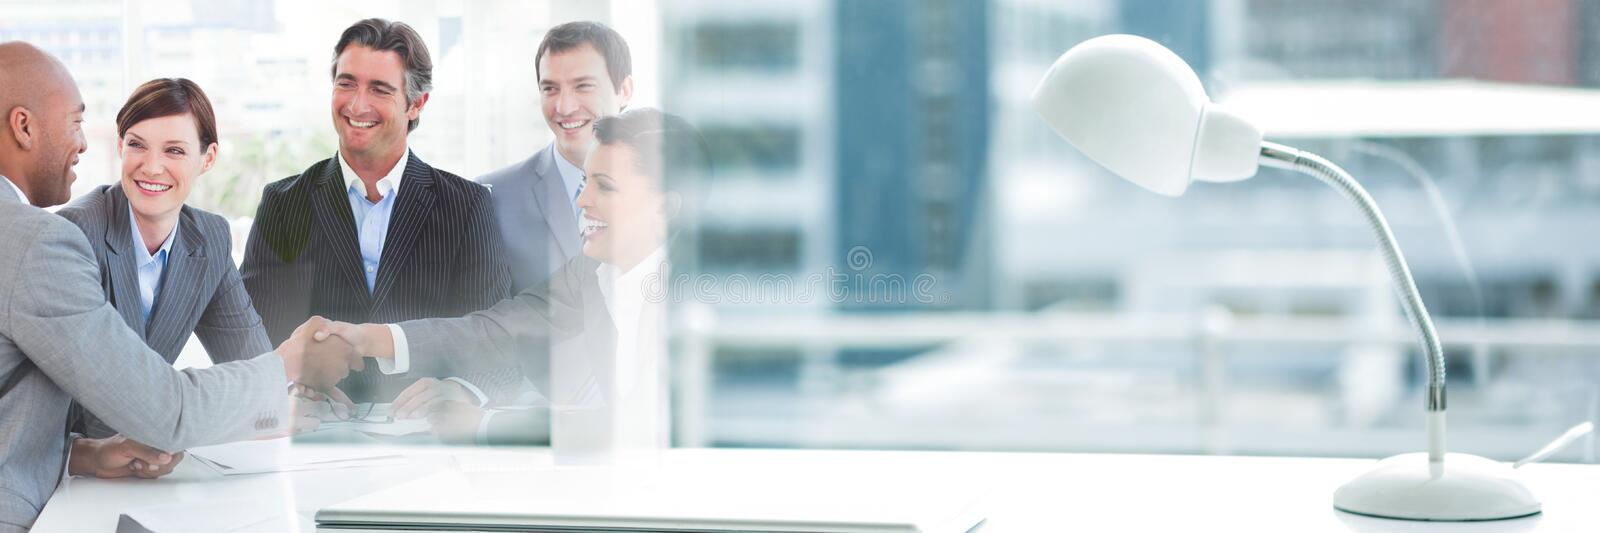 Happy business people shaking hands stock photos